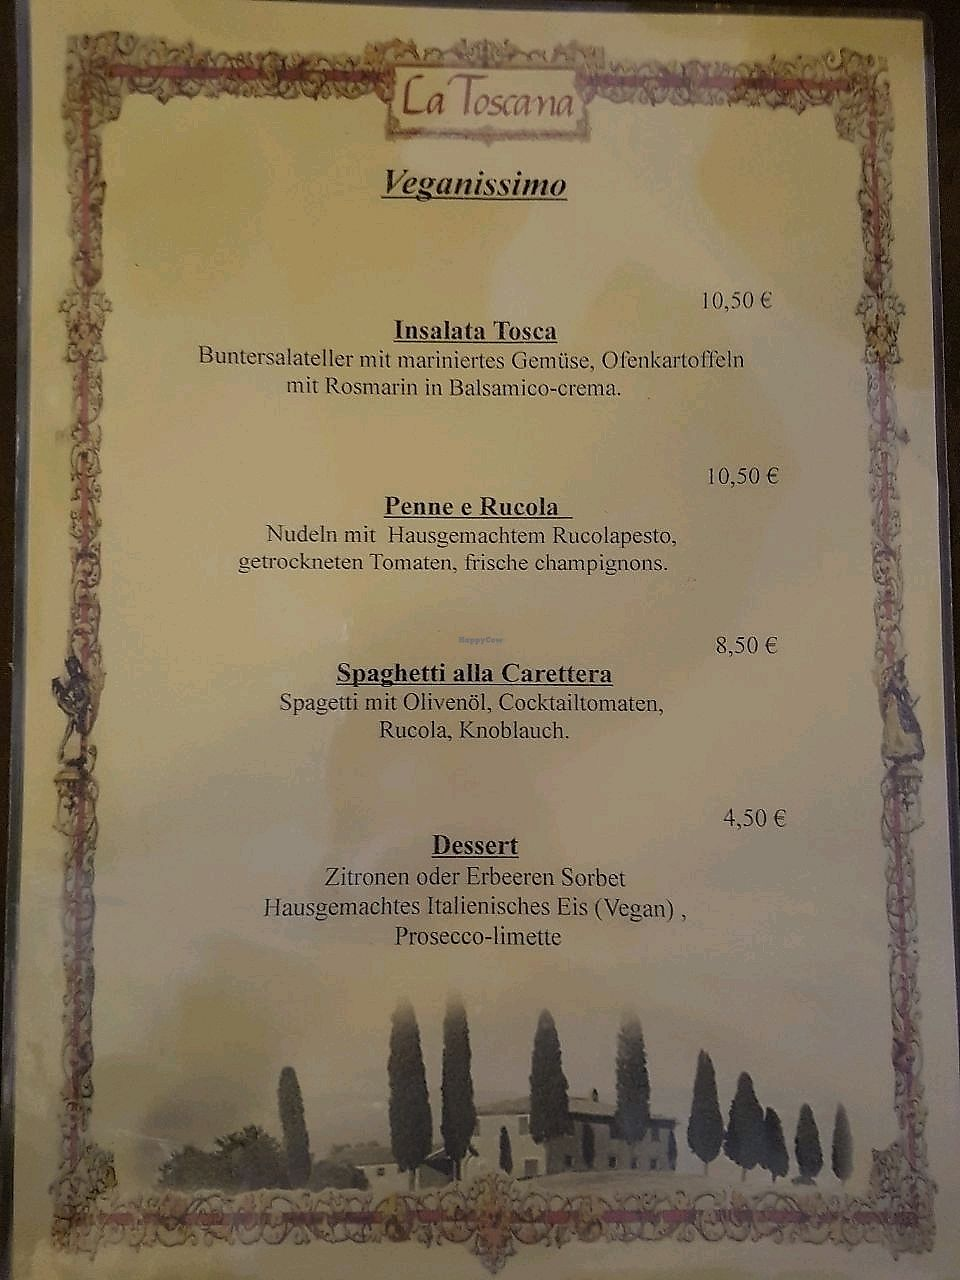 """Photo of La Toscana  by <a href=""""/members/profile/EnricoVegan"""">EnricoVegan</a> <br/>vegan menu (you have to ask for it) <br/> January 30, 2018  - <a href='/contact/abuse/image/110709/352765'>Report</a>"""